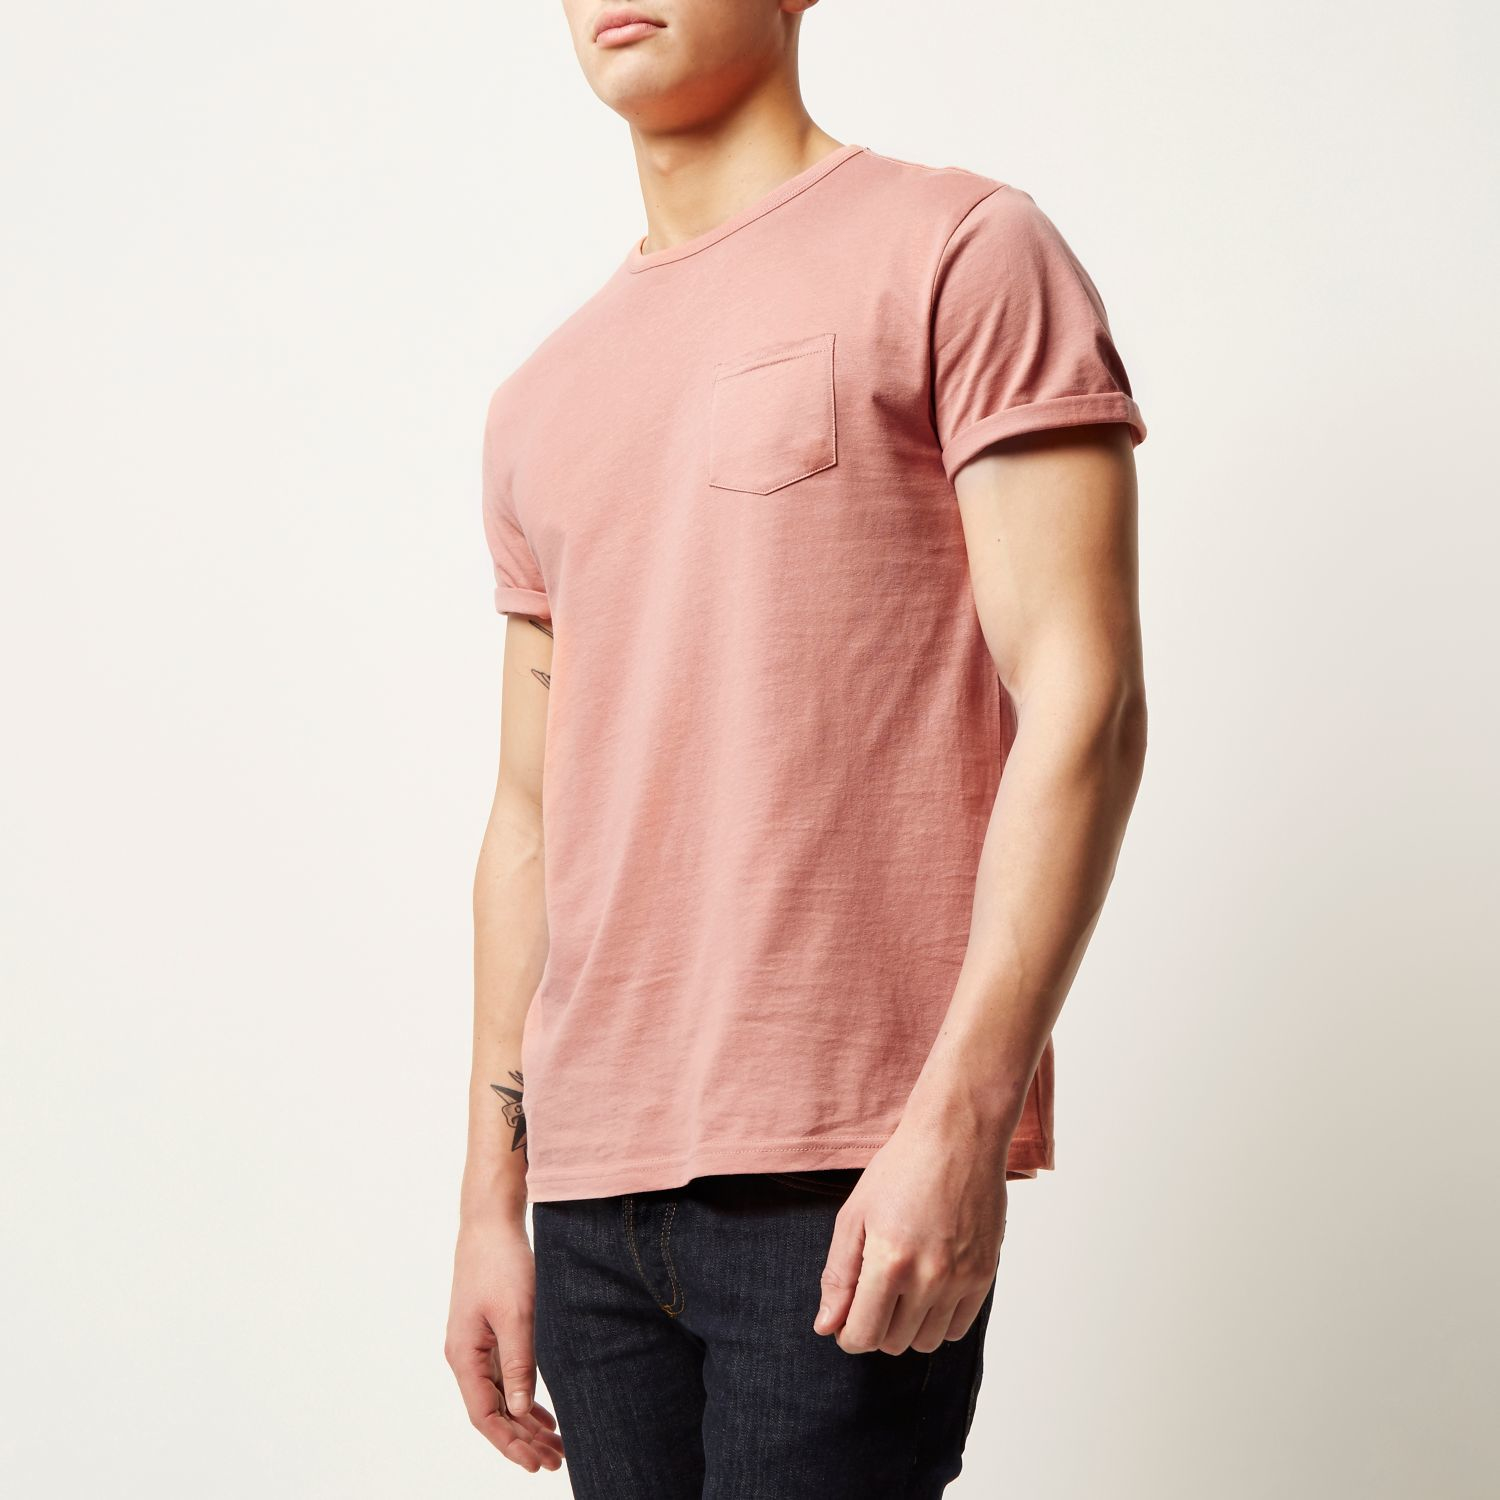 6299e2a97 River Island Salmon Pink Plain Chest Pocket T-shirt in Pink for Men ...